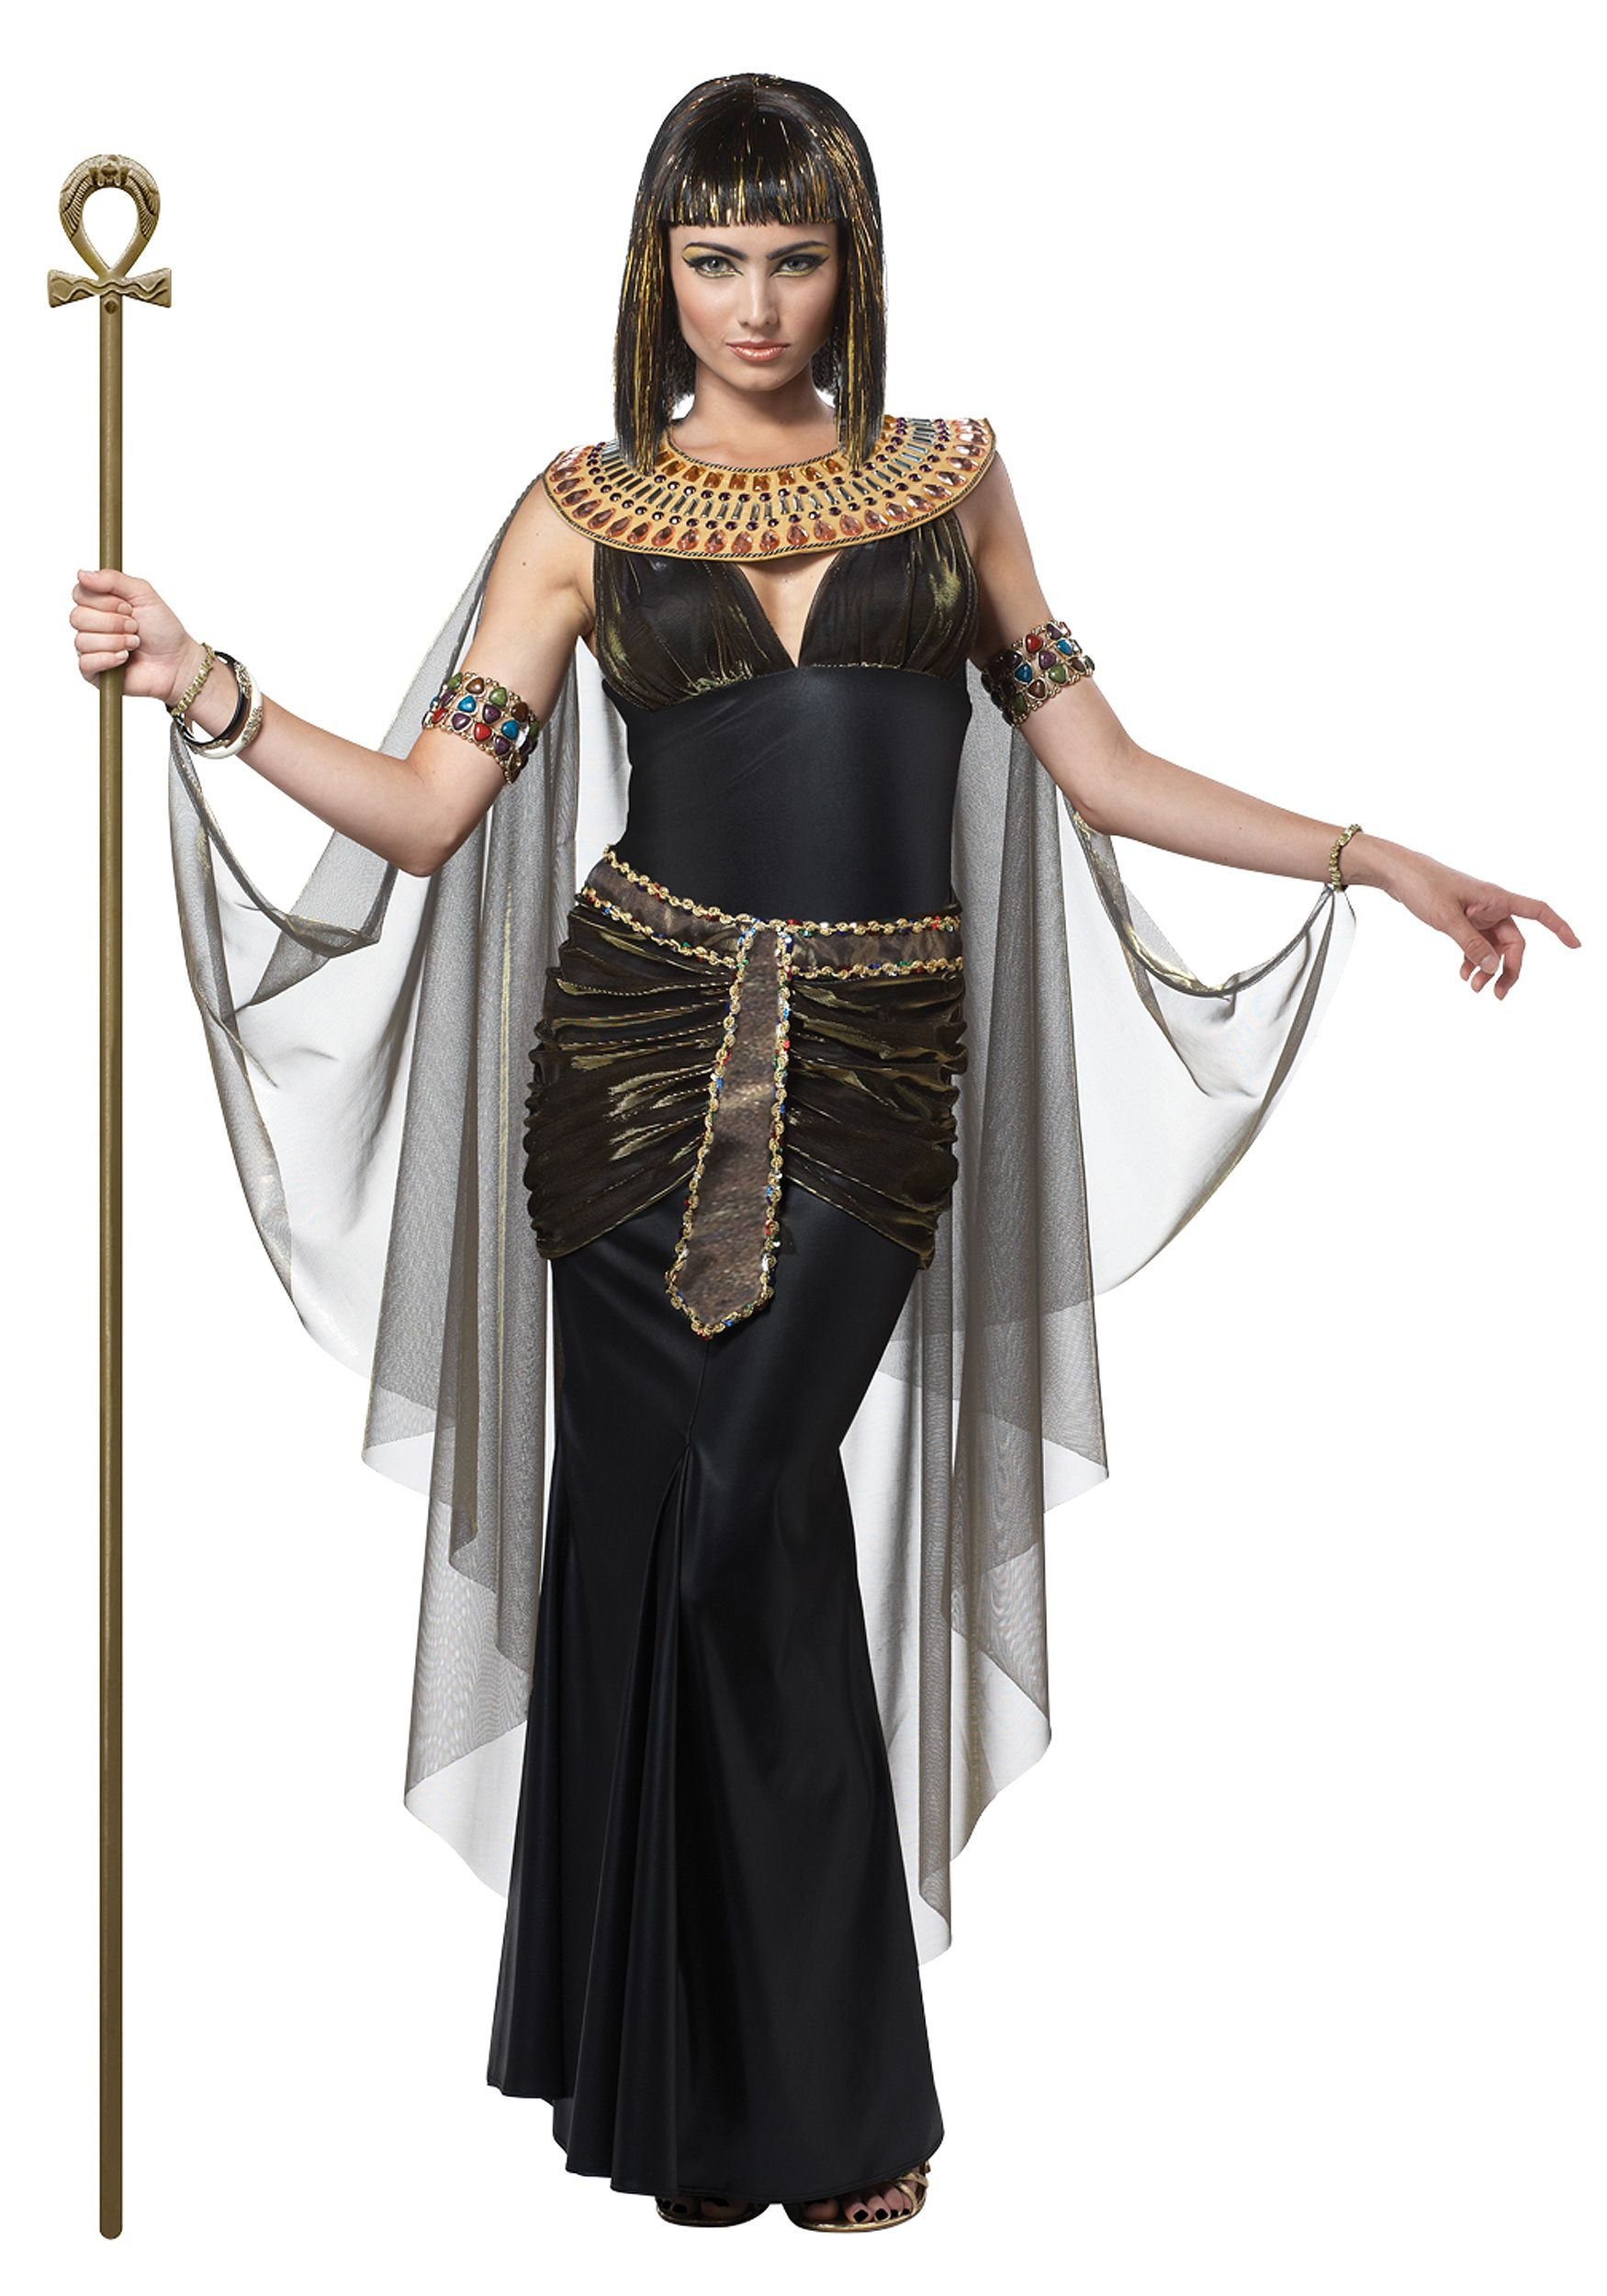 Ladies Cleopatra Queen of the Nile Ancient Egyptian Costume